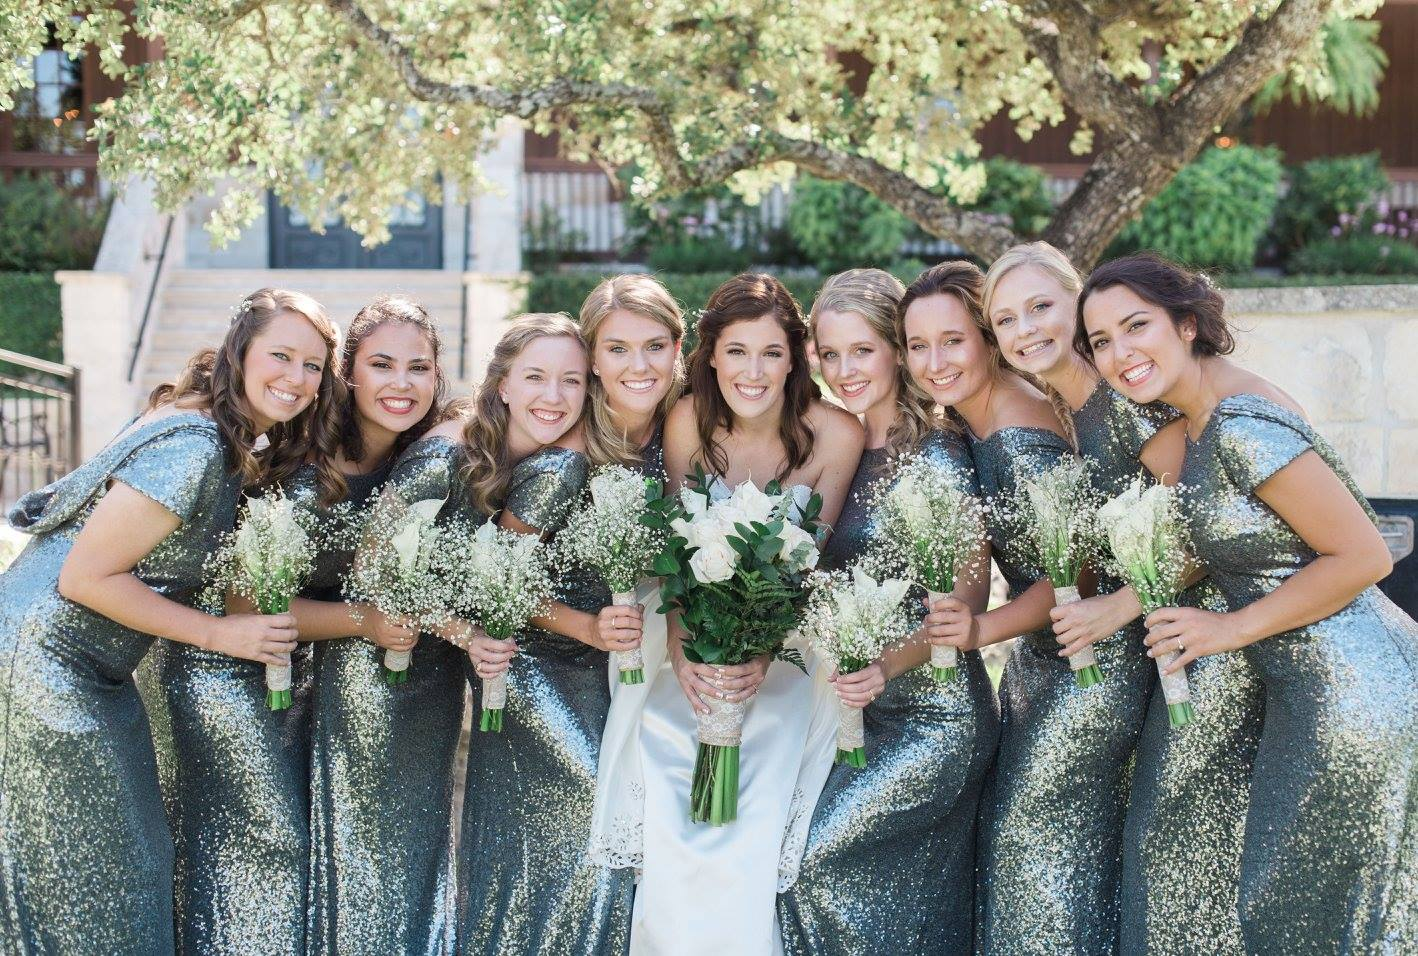 bridesmaids in spring wedding wearing charcoal sequins to support their bestie on the big day.